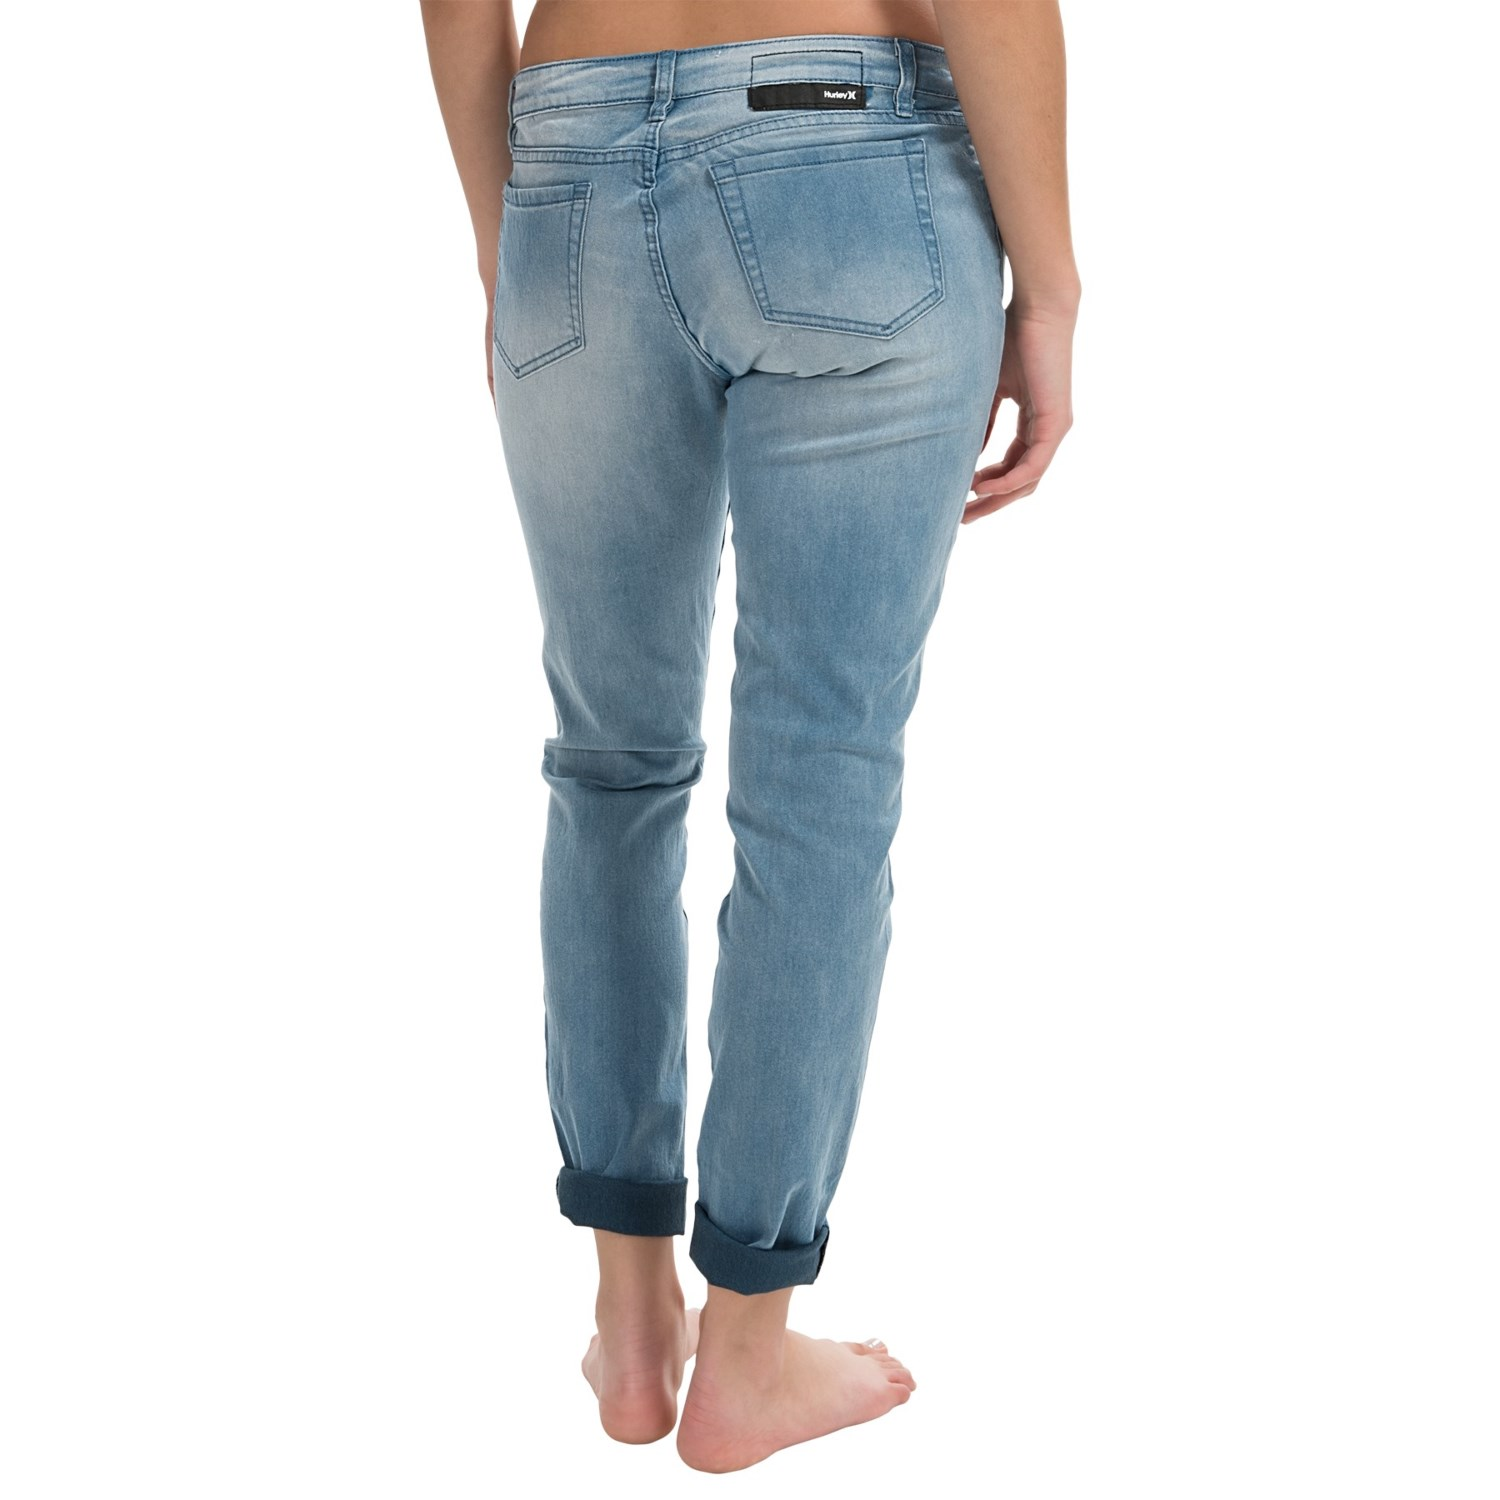 Shop jeans and denim for tall women, from acid wash to classic styles today at ASOS. your browser is not supported. ASOS DESIGN Tall Ridley high waist skinny jeans in pretty mid stonewash blue. $ ASOS DESIGN Tall Rivington high waist denim jeggings in clean black. $ ASOS DESIGN Tall denim girlfriend jacket in washed black.